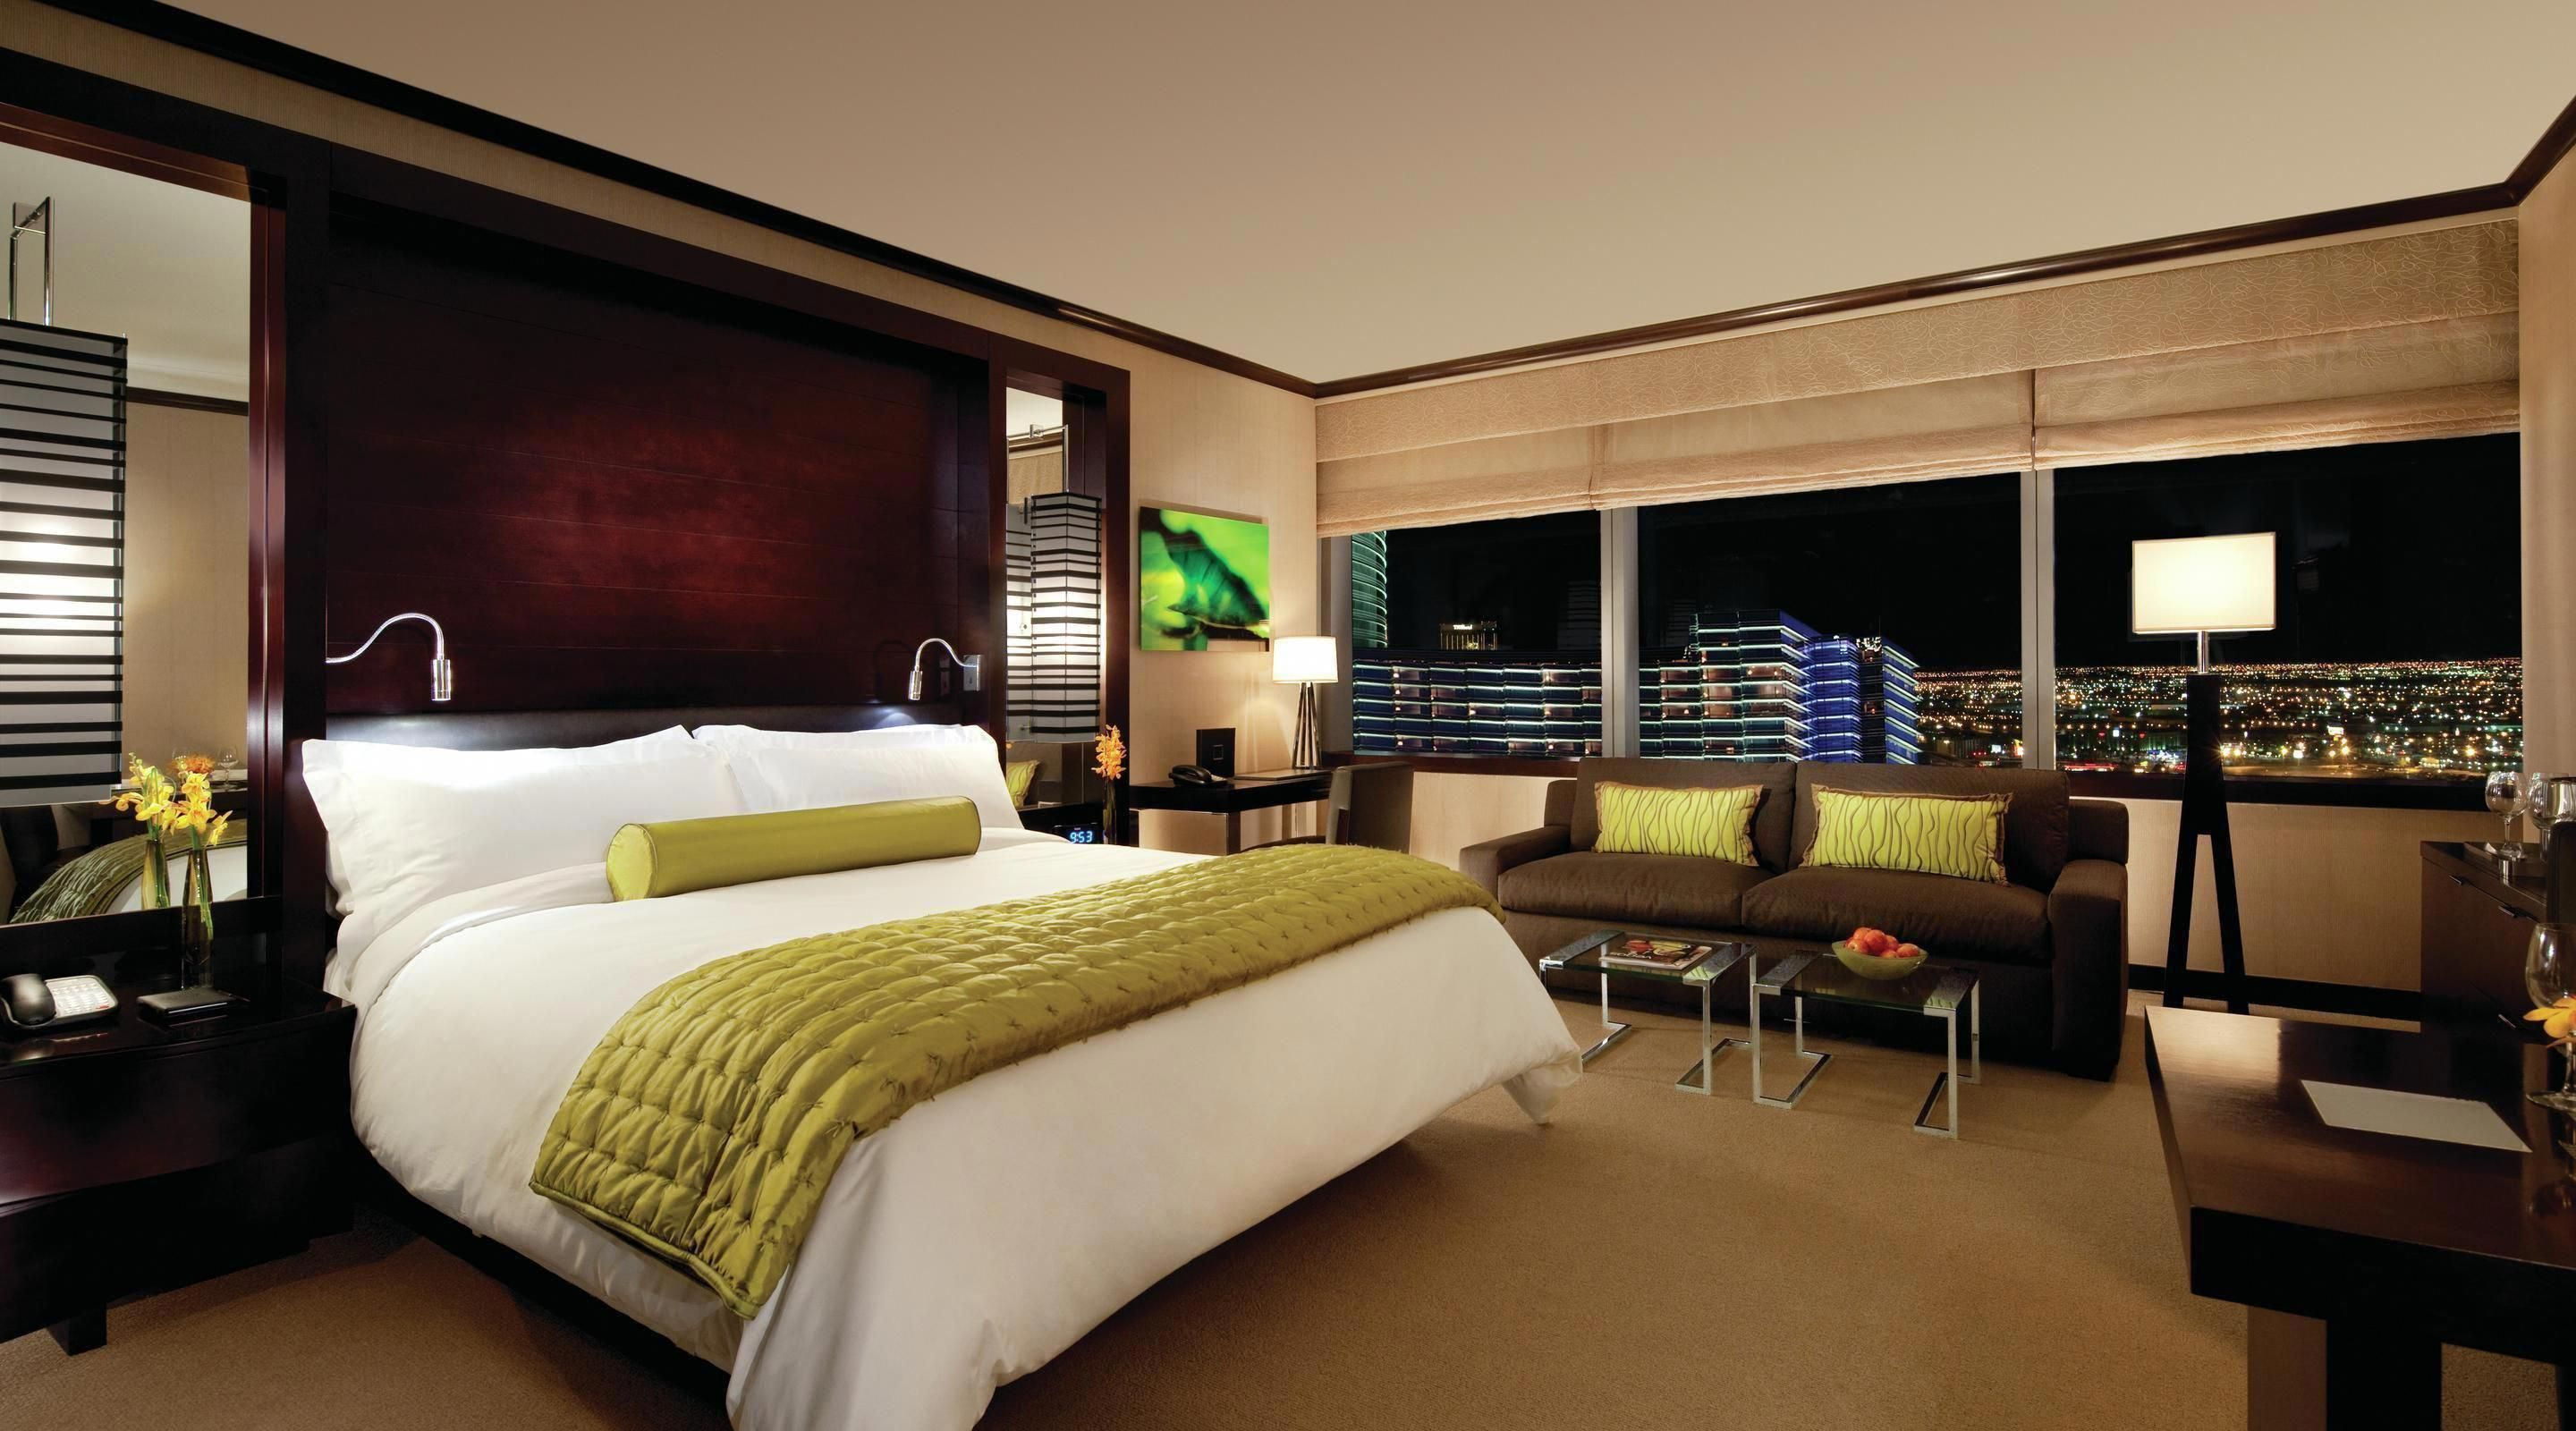 Vdara S Base Suite Is Anything But Basic With 582 Square Feet Of Luxury Including A Kitchenette You Have Never E Vegas Rooms Lofts For Rent Vegas Hotel Rooms